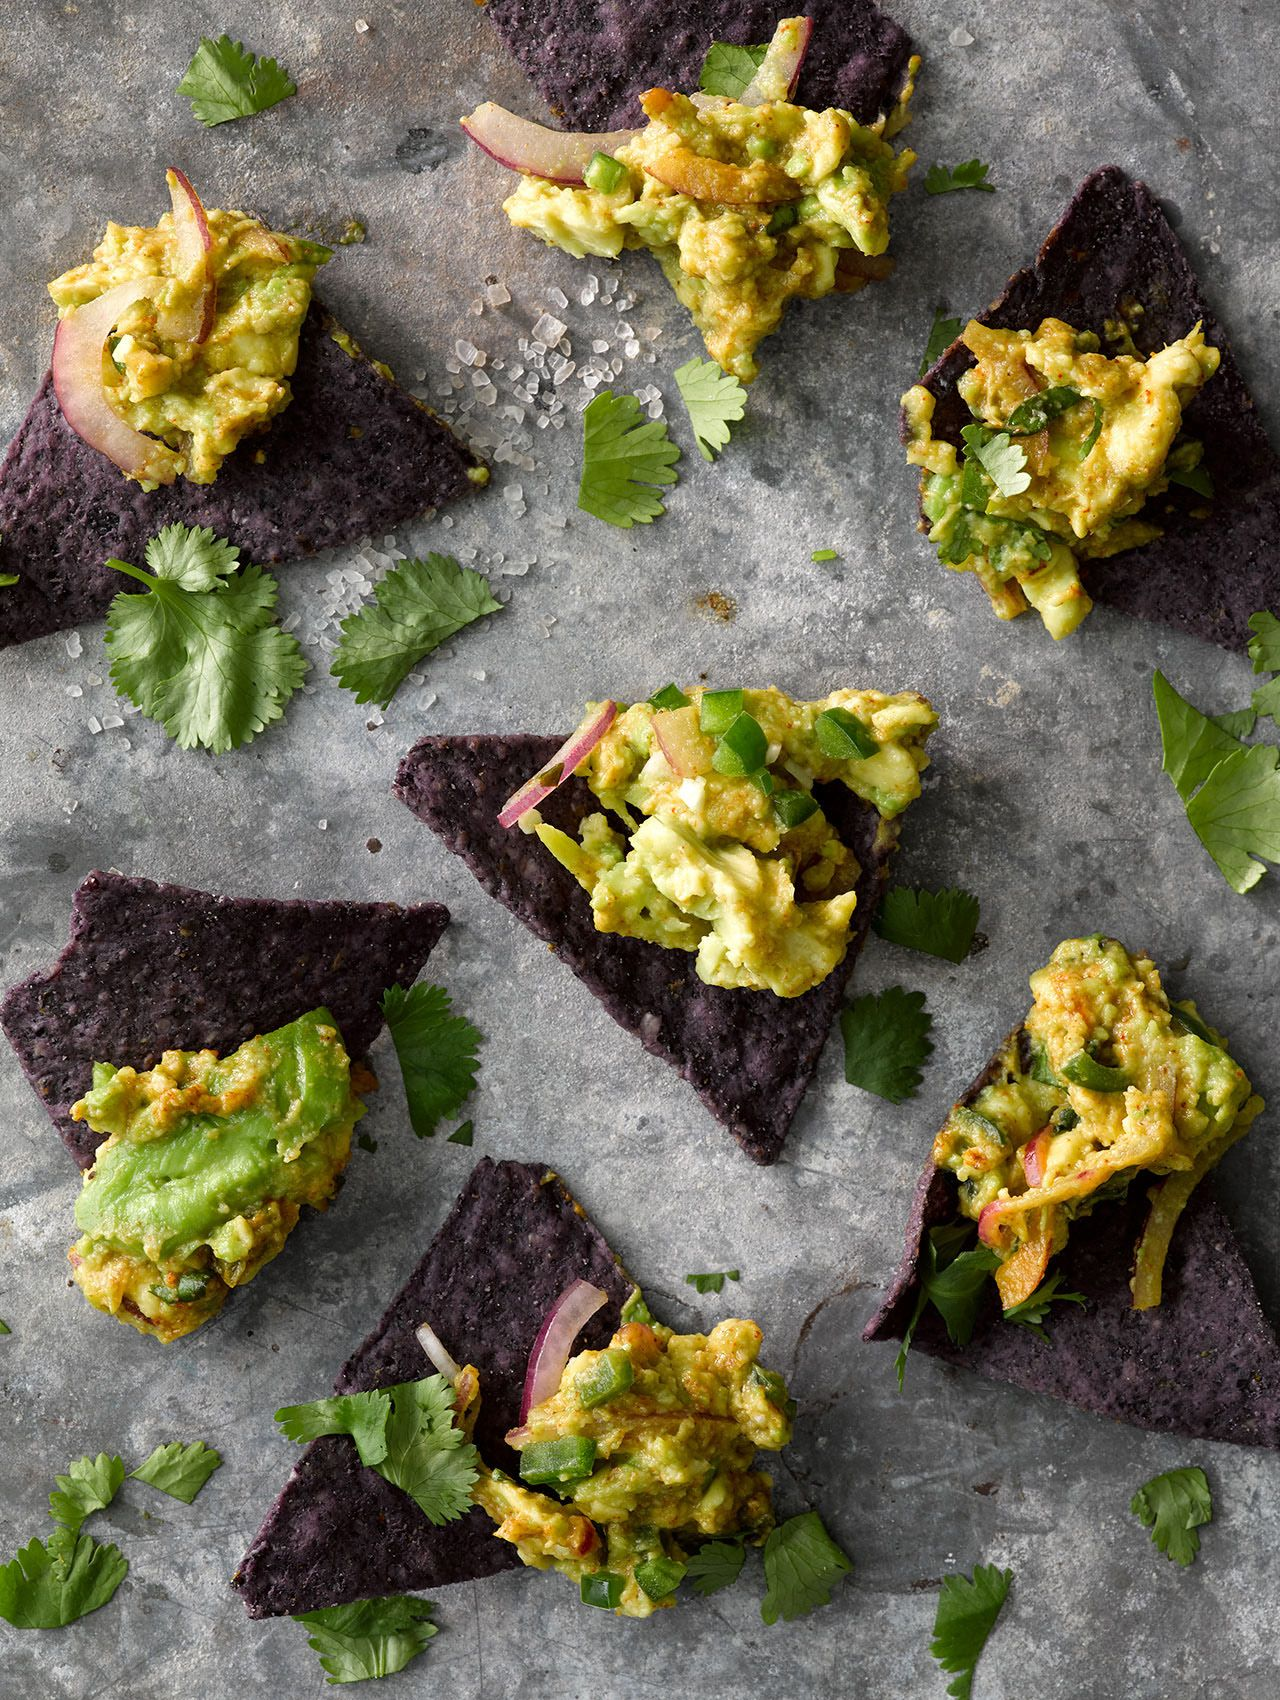 Tortilla Chips with Guacamole